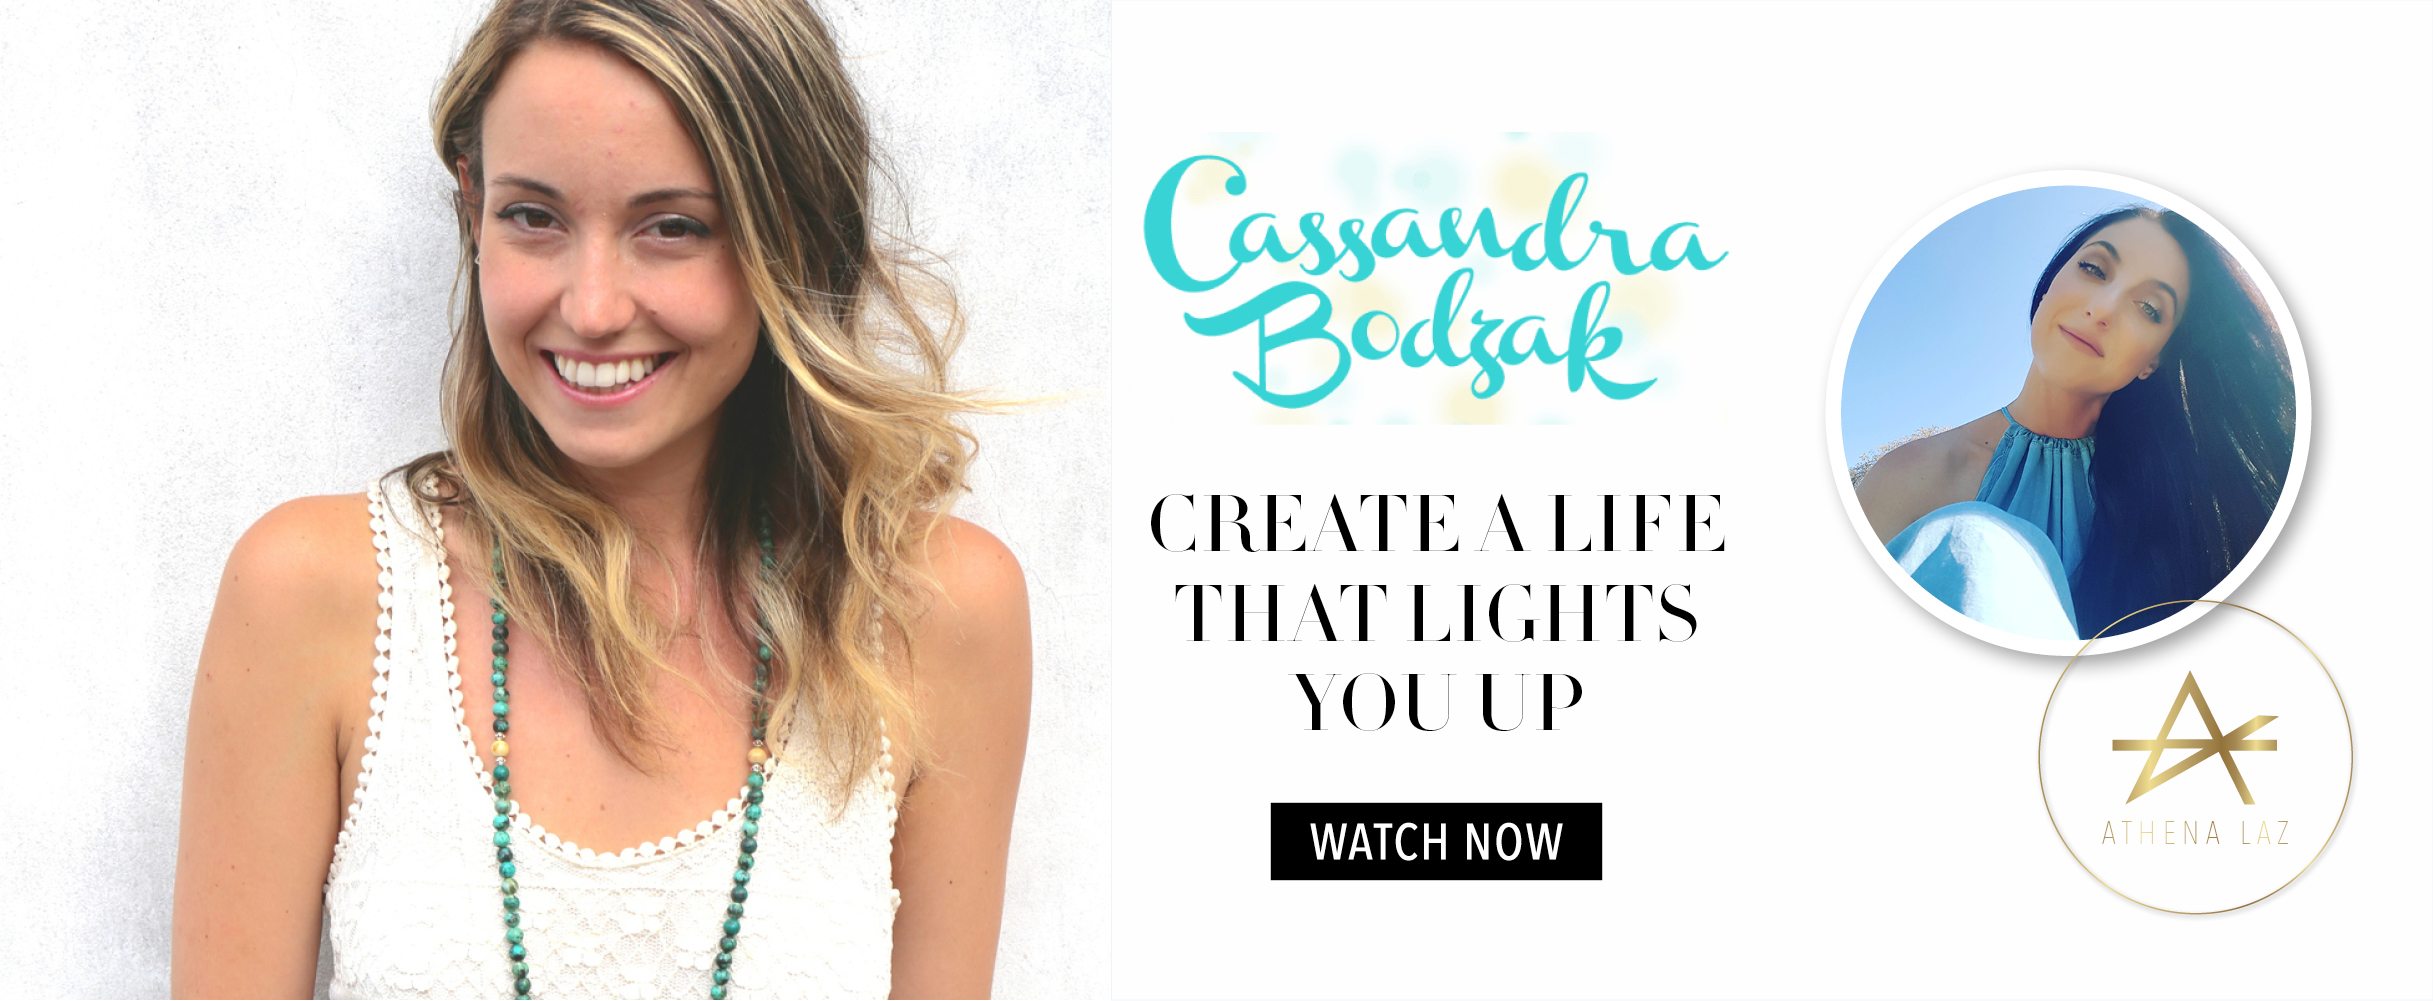 Athena Laz interviews Cassandra Bodzack on how to create a life that lights you up.